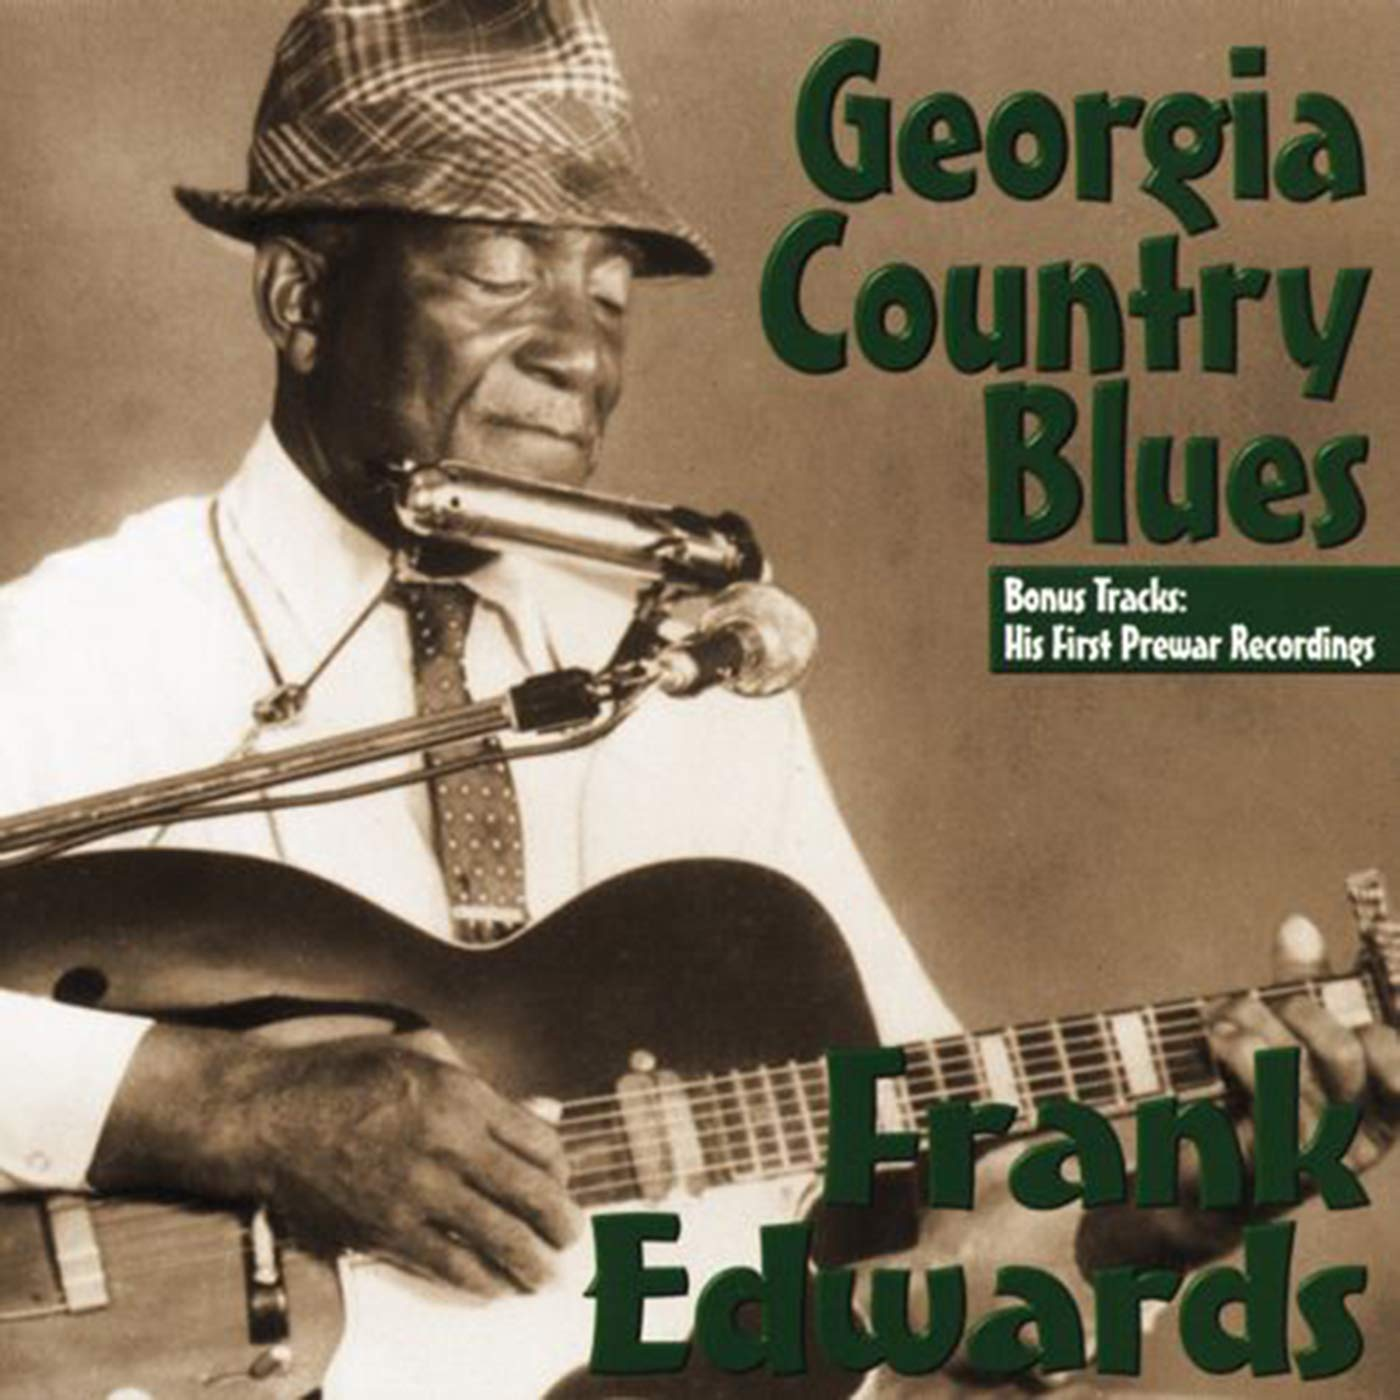 Georgia Country Blues Max gift 43% OFF